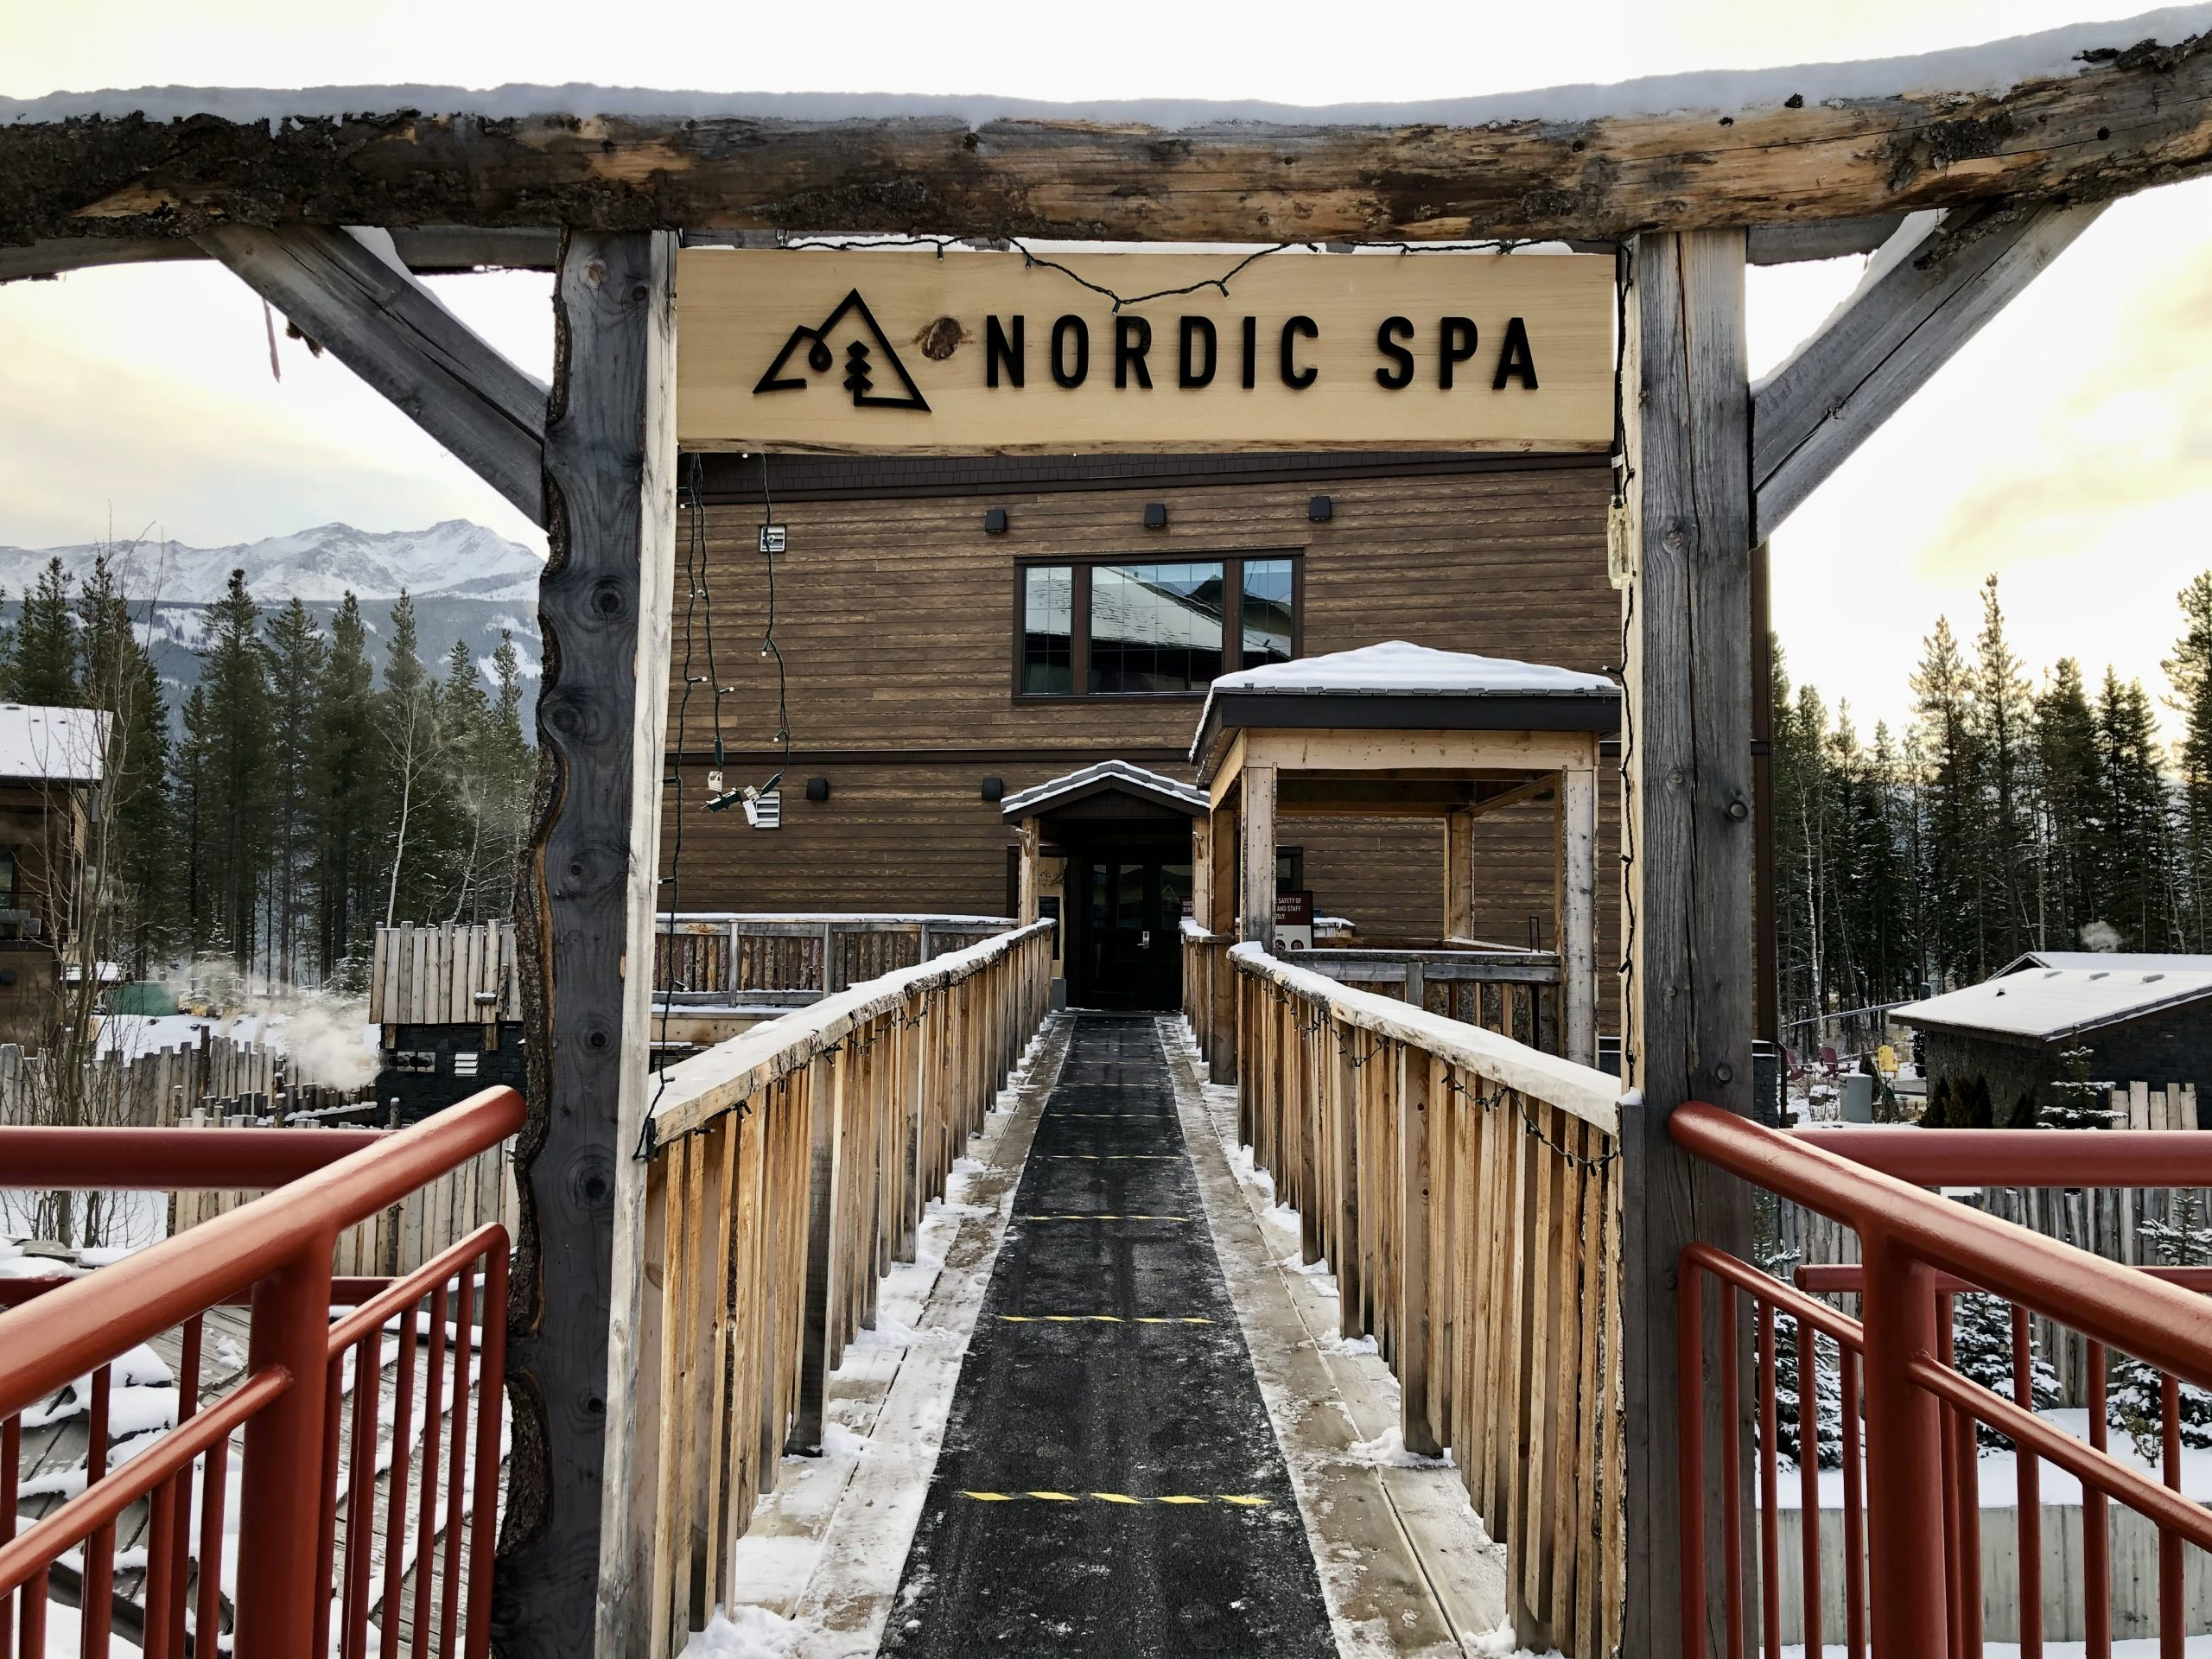 Kananaskis Retreat: Relaxing Winter Getaway in the Rocky Mountains via @outandacross